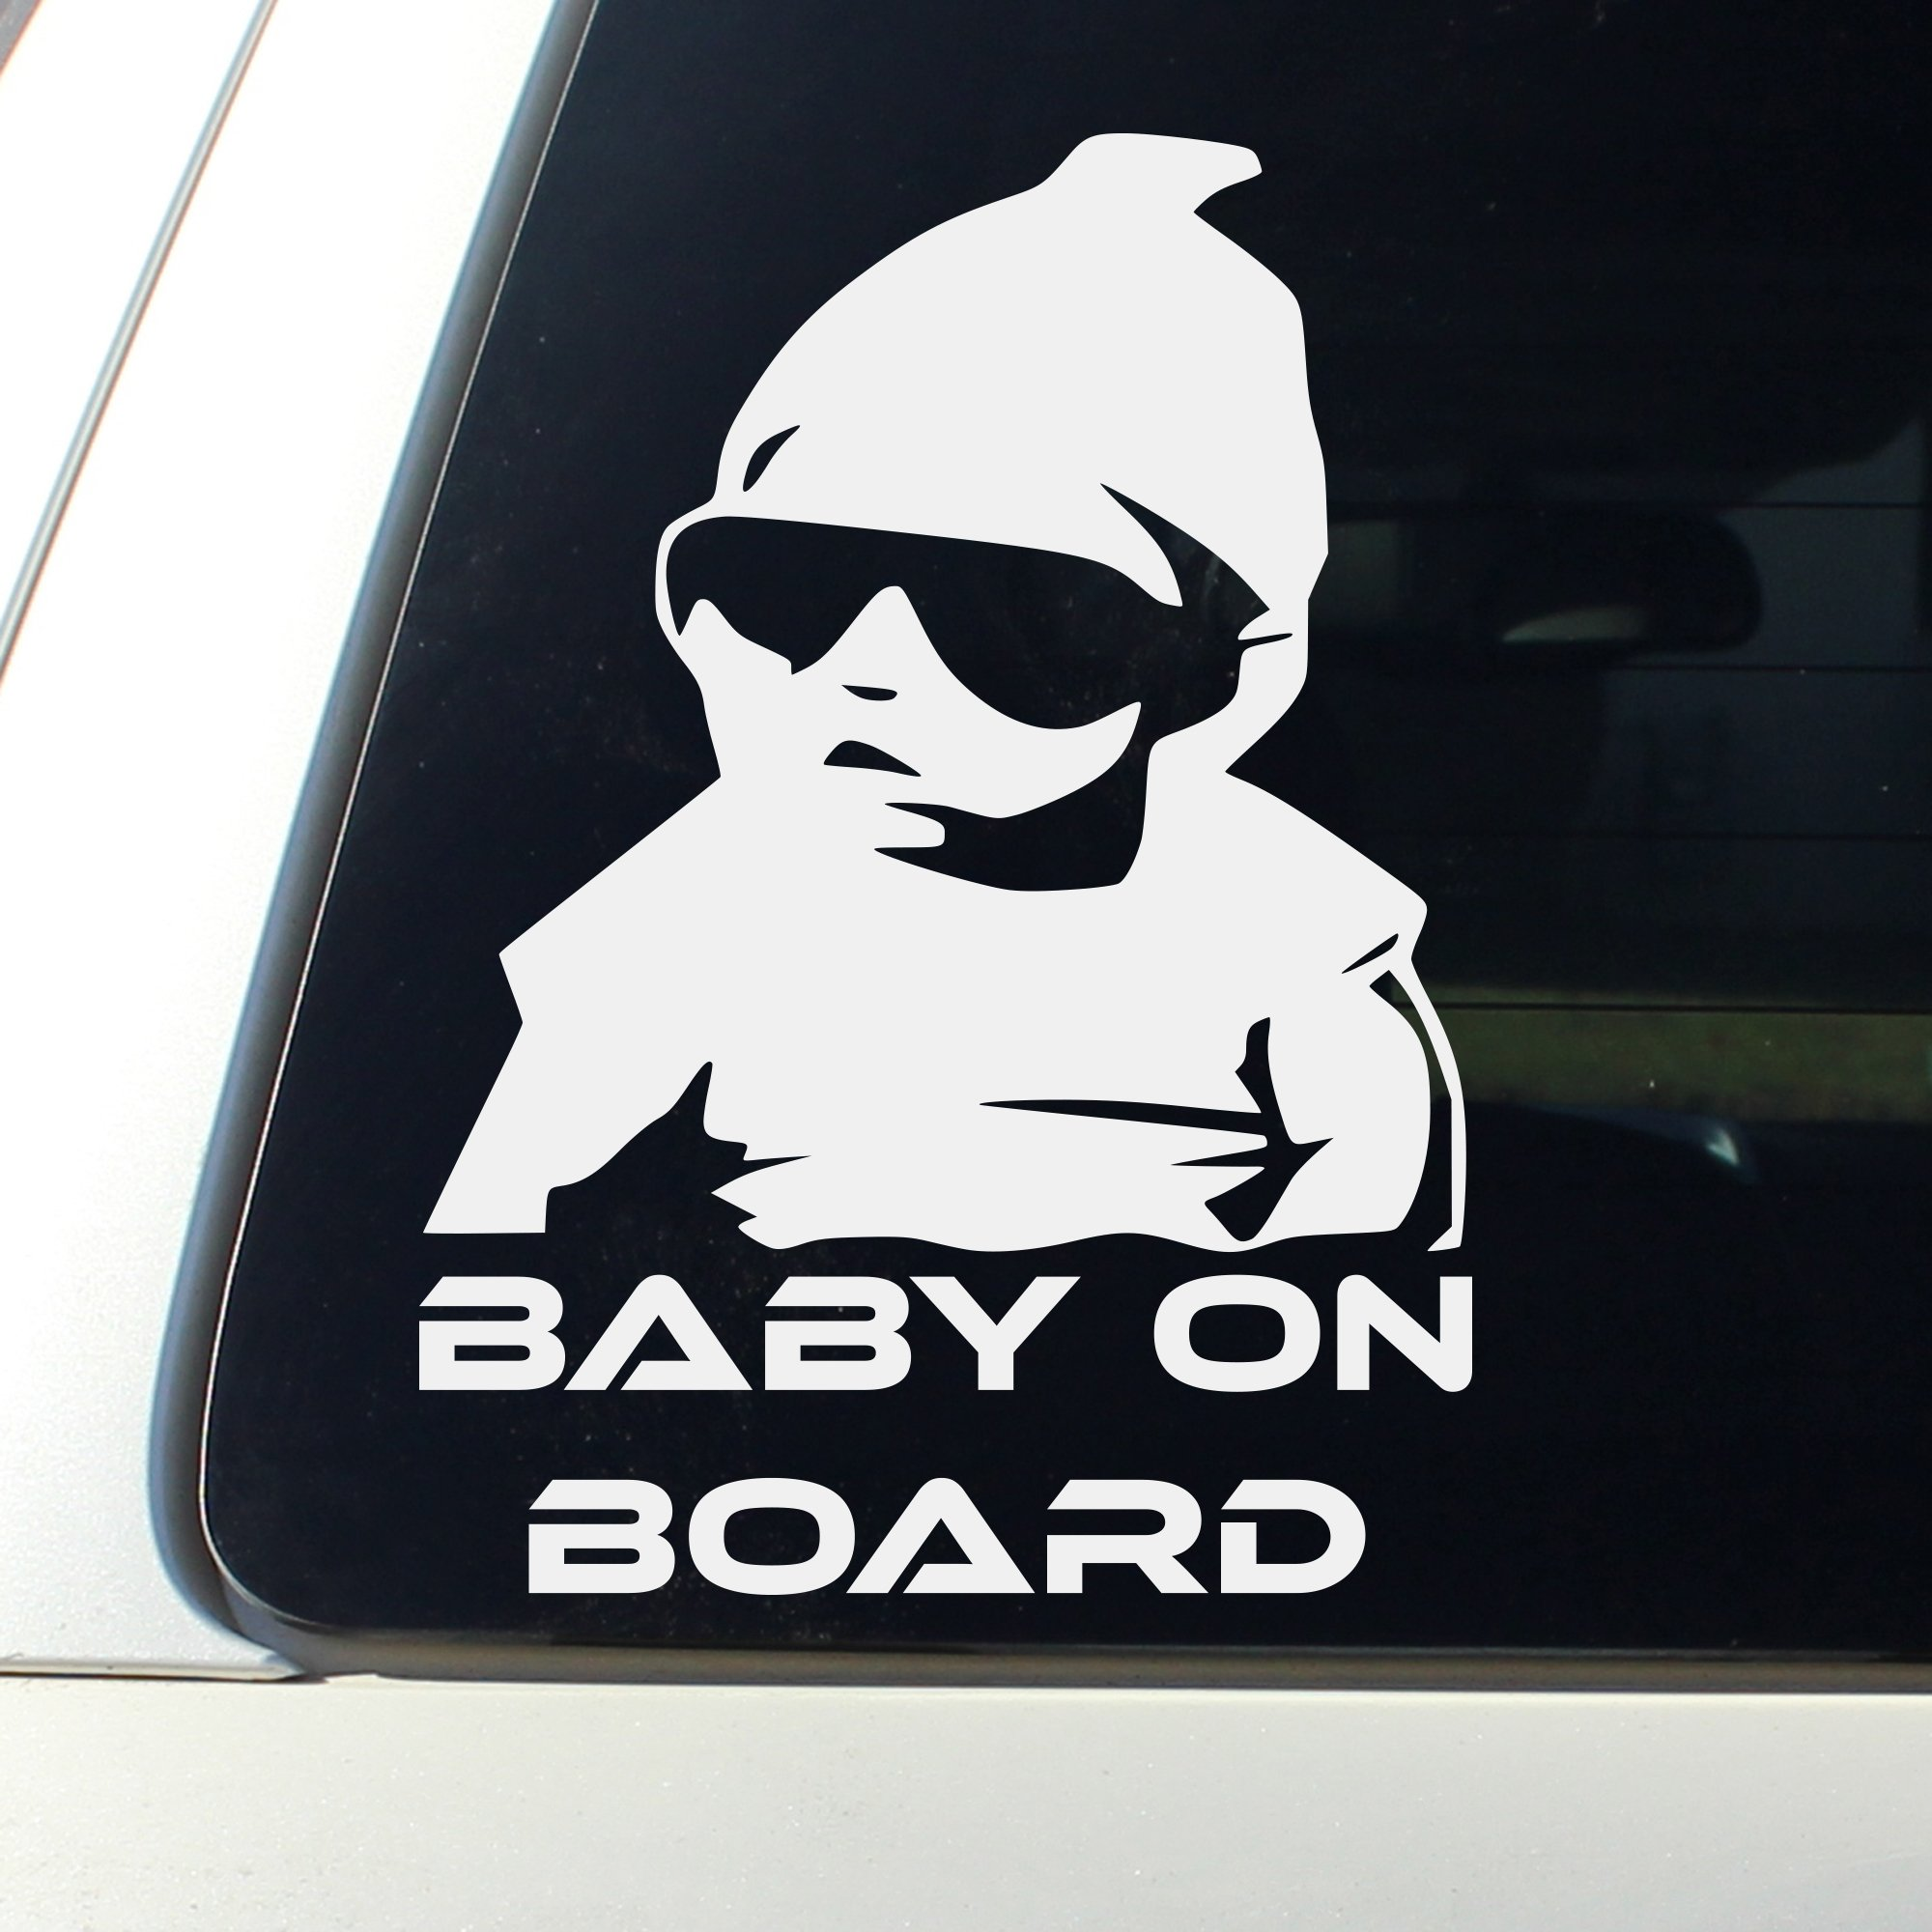 Cheap Funny Jeep Decals Find Funny Jeep Decals Deals On Line At - Custom windo decals for jeepsjeep hood decals and stickers custom and replica jeep decals now